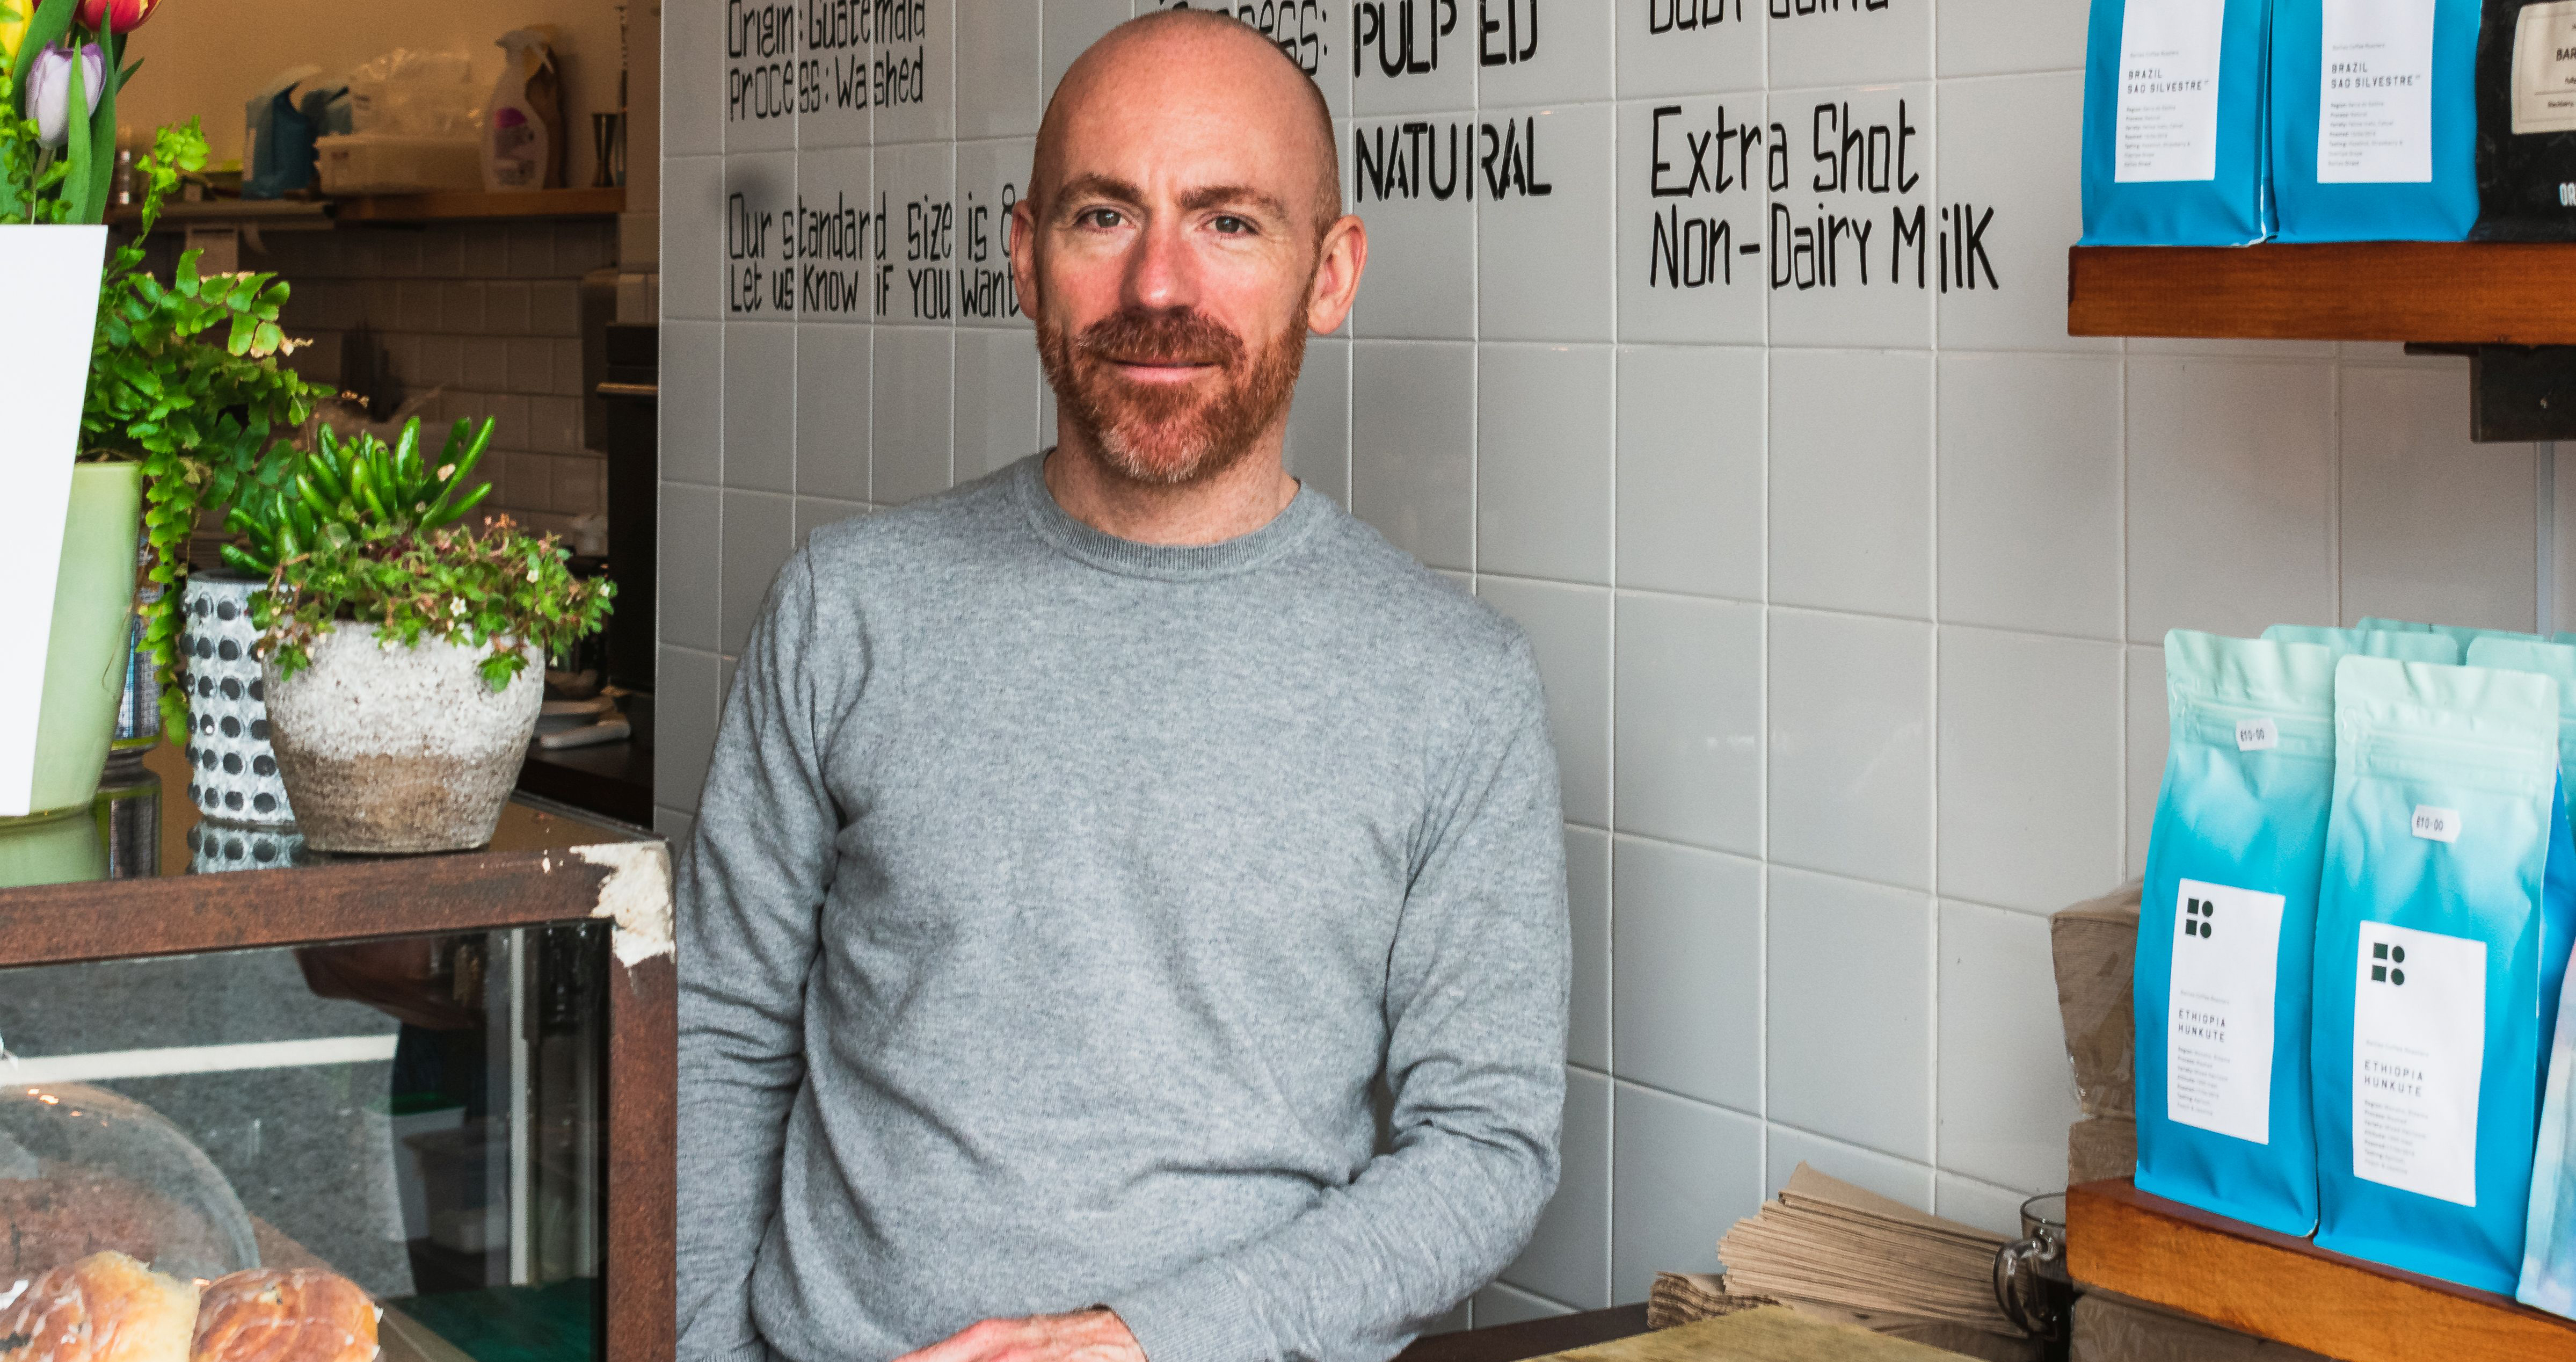 Stephen Kennedy, Owner of Copper & Straw